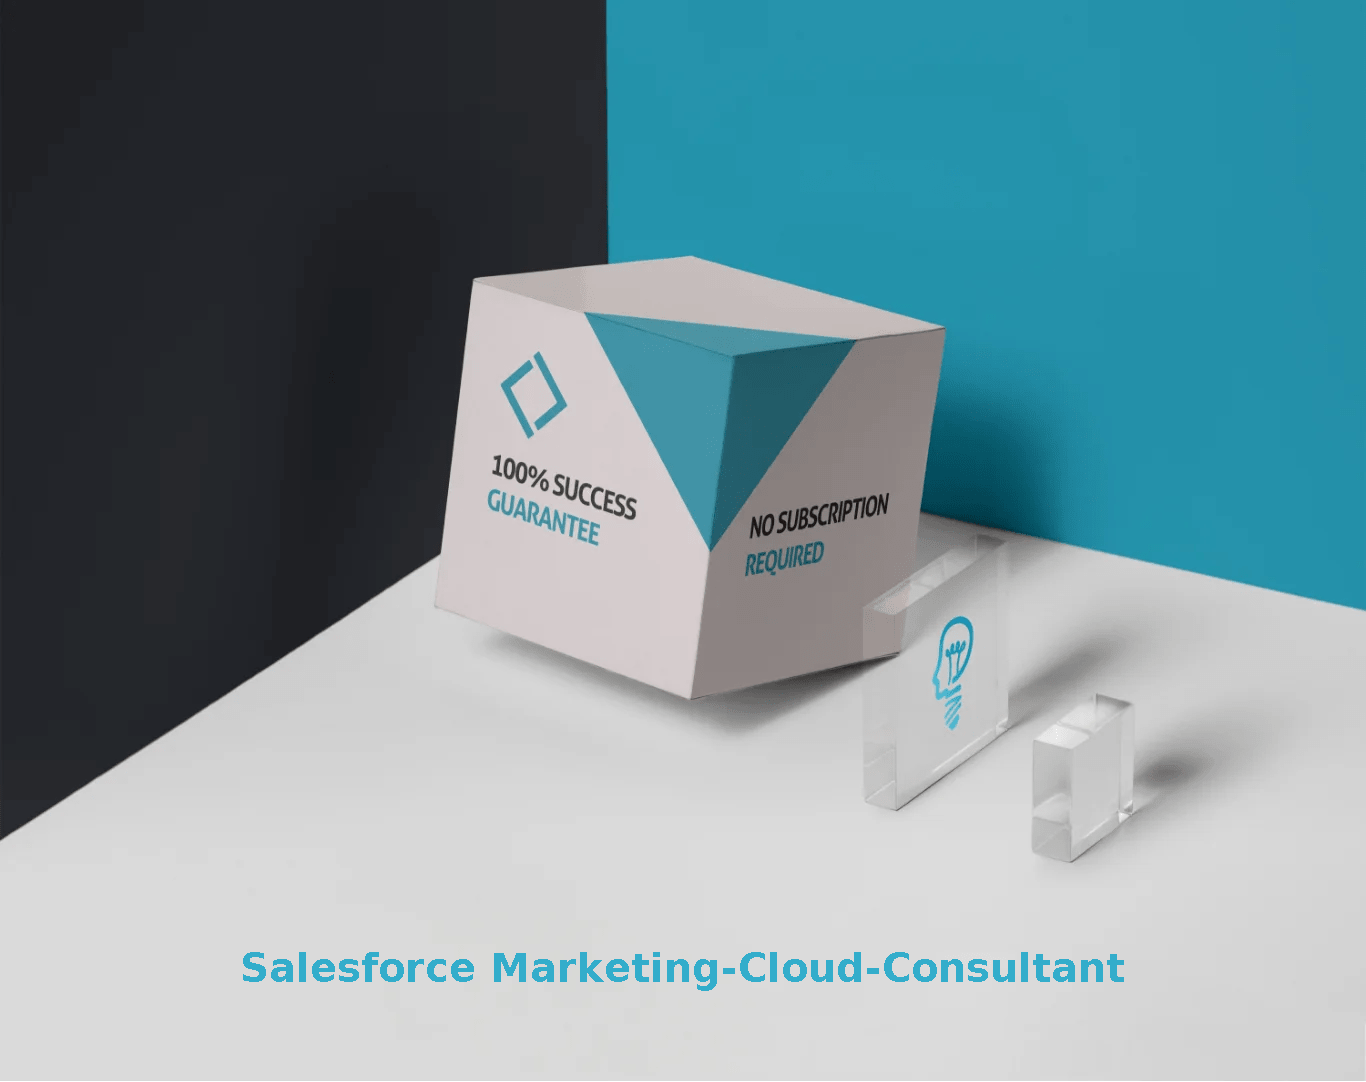 Salesforce Marketing-Cloud-Consultant Exams